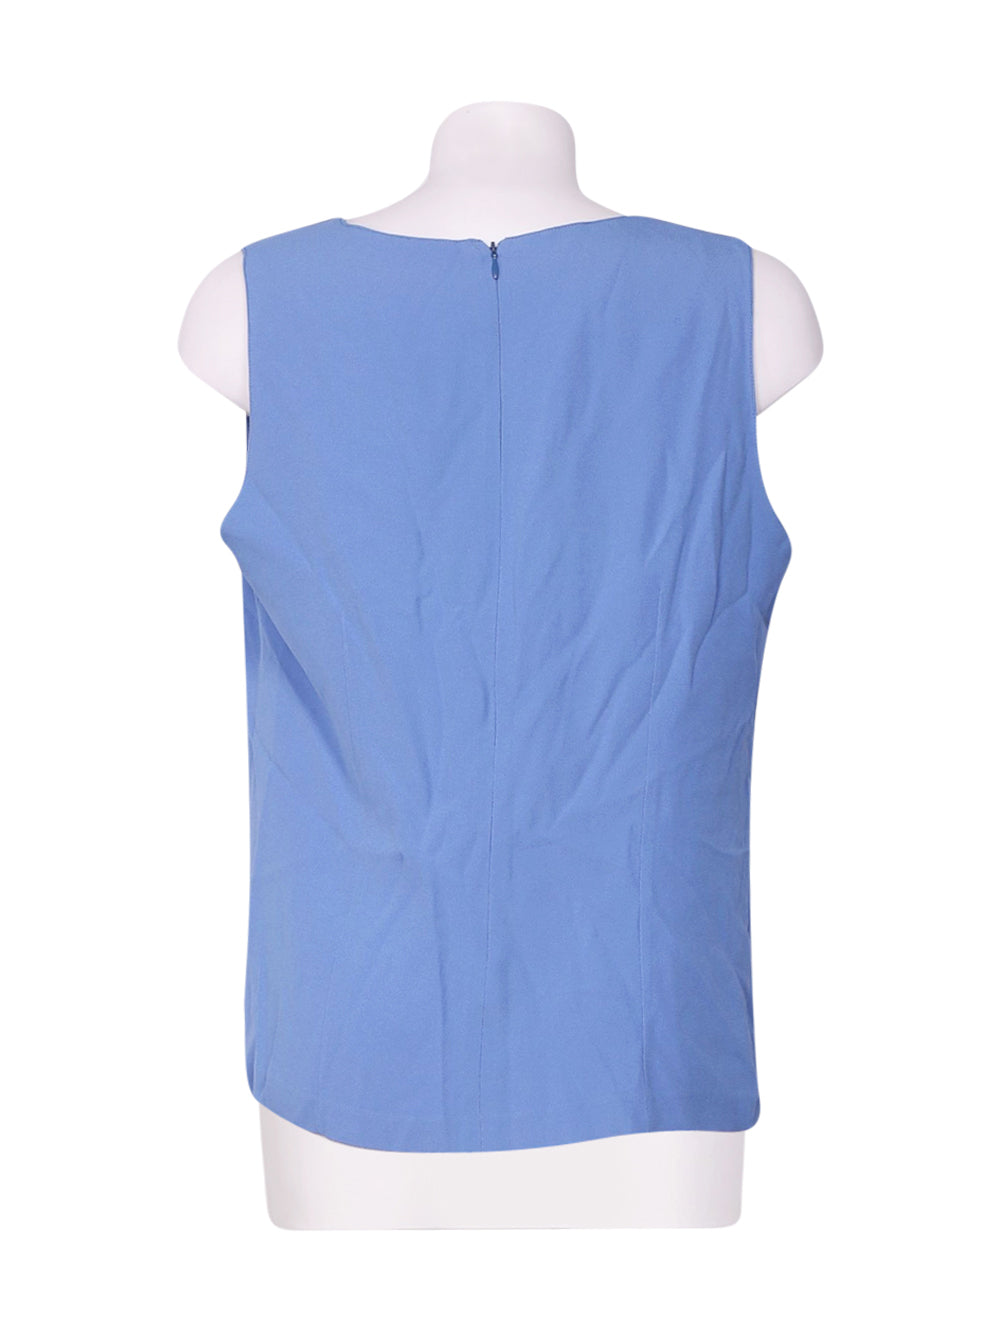 Back photo of Preloved romy Blue Woman's sleeveless top - size 16/XXL